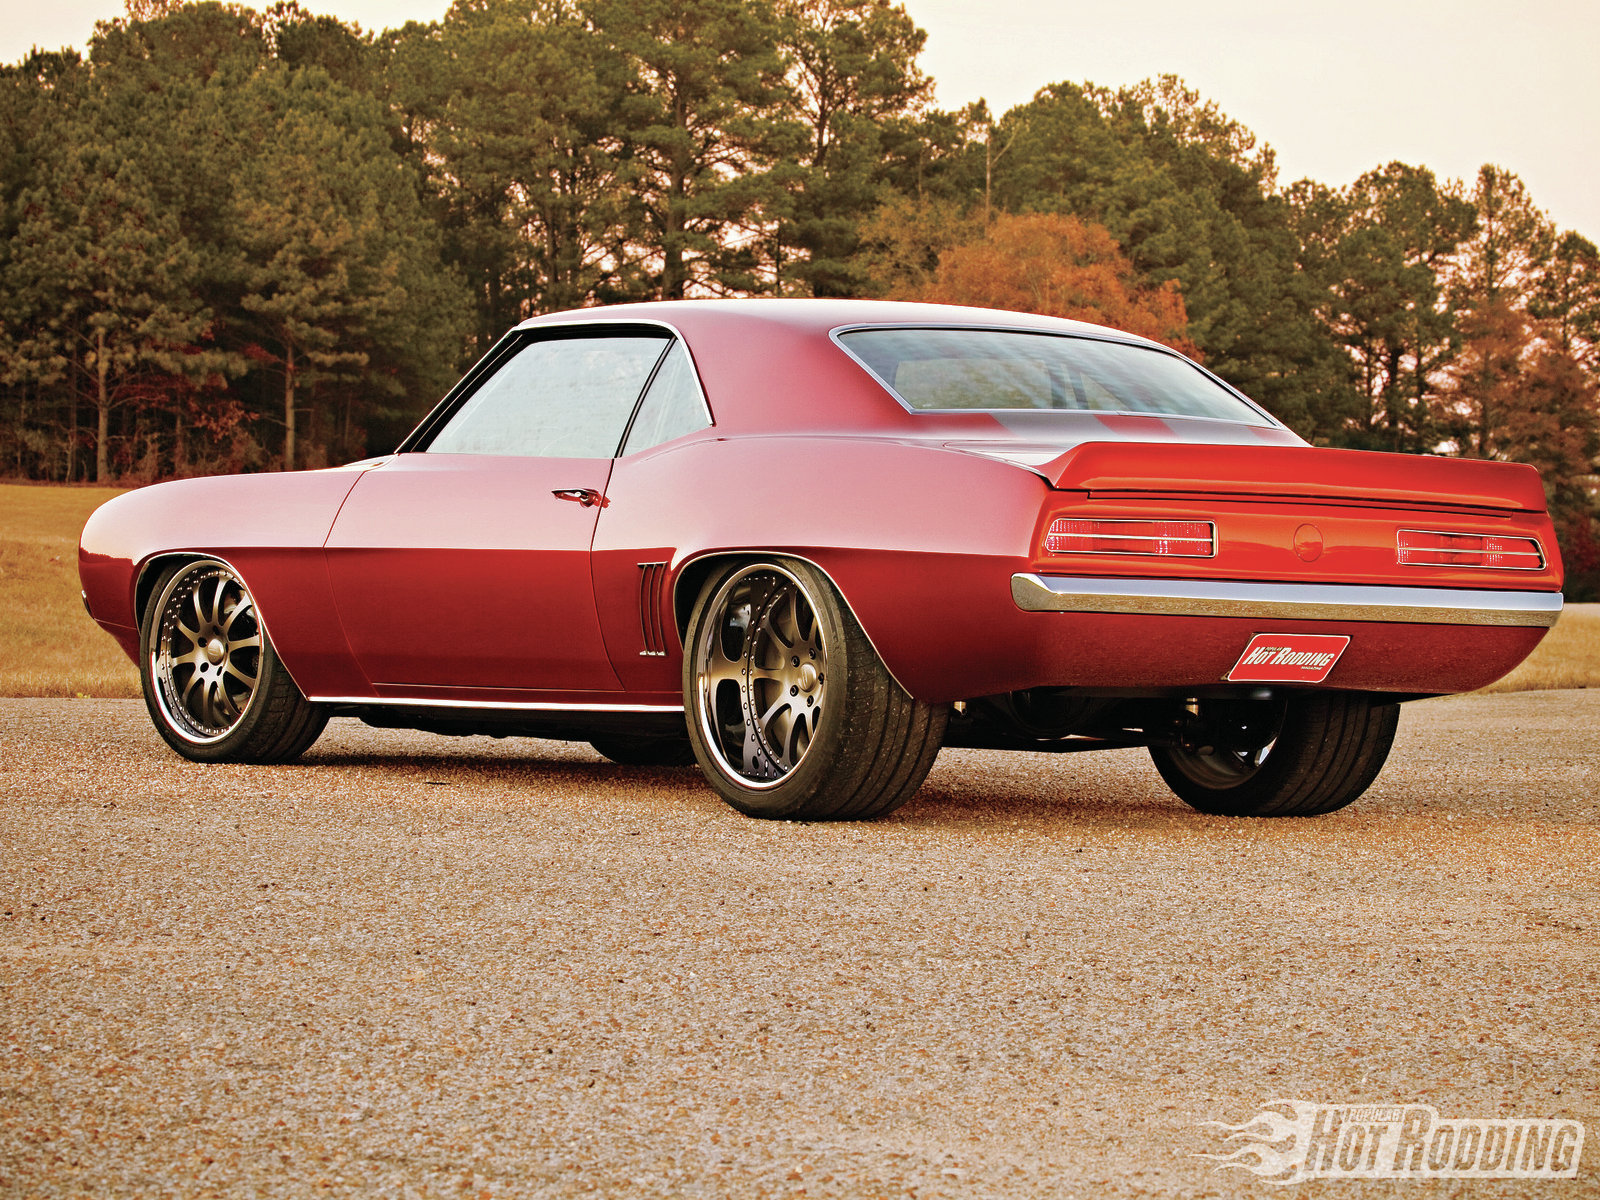 Chevy Muscle Car Wallpaper: 1969 Chevrolet Camaro Wallpaper And Background Image